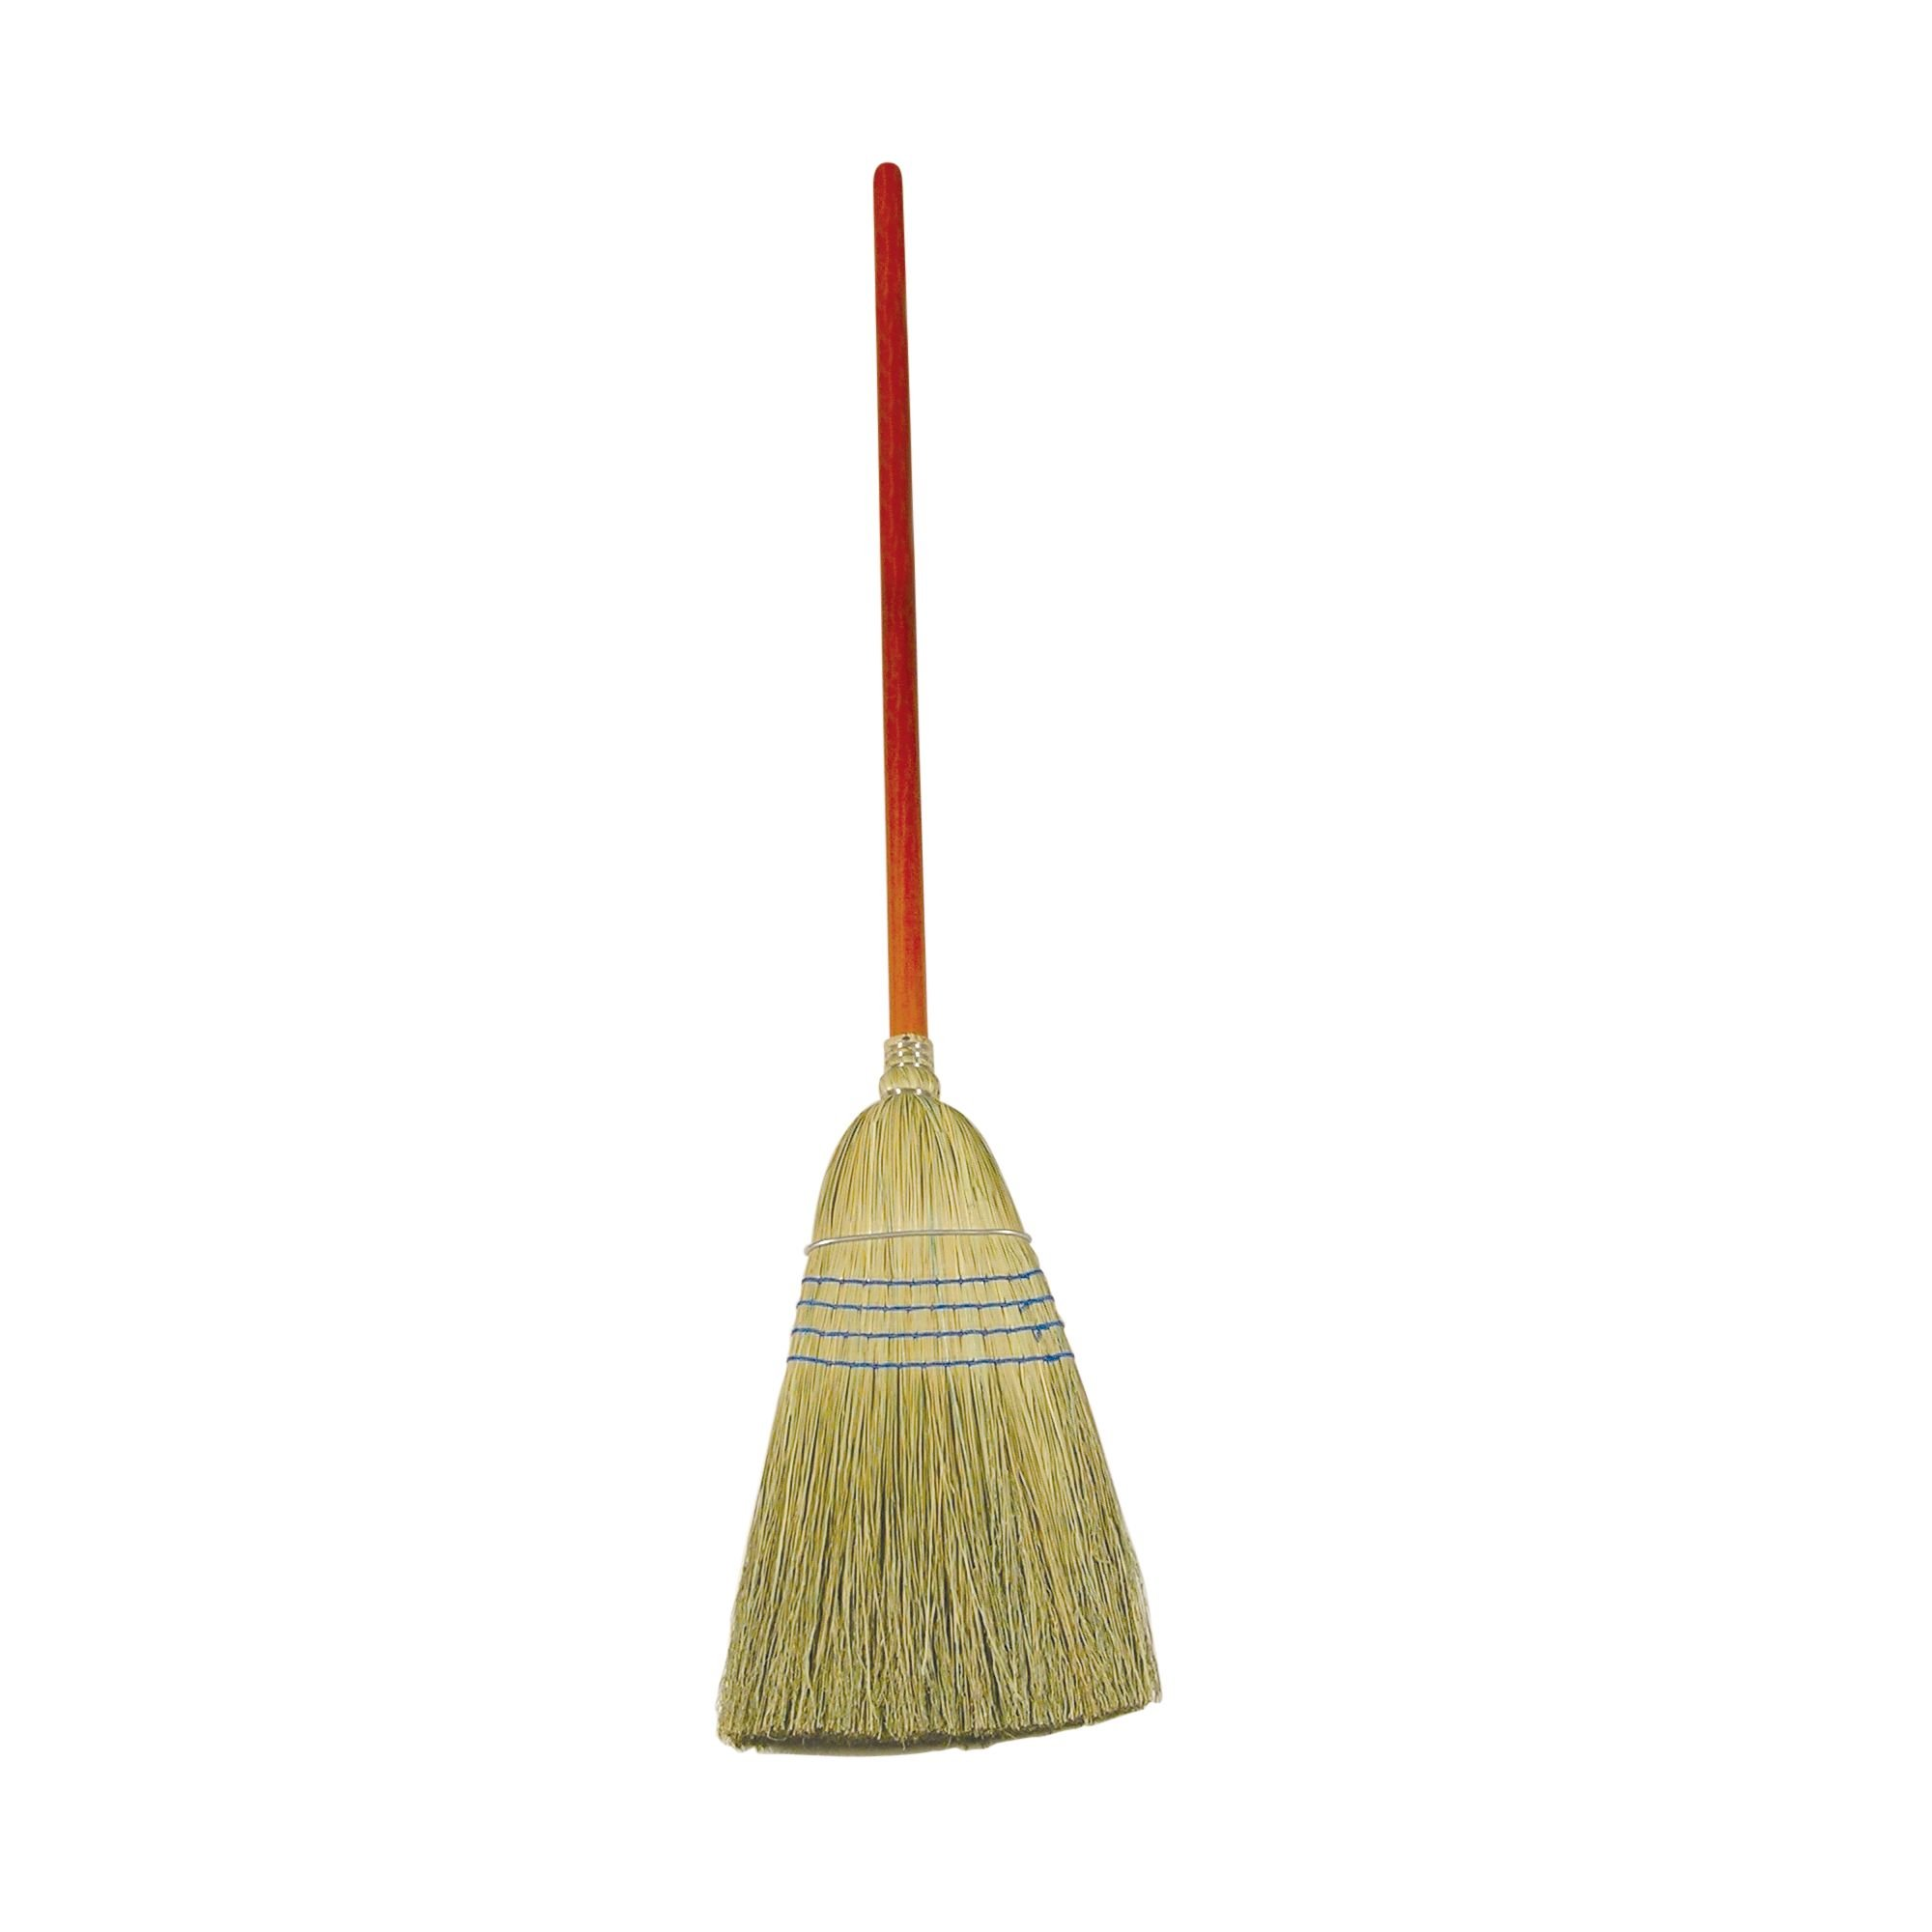 Rubbermaid Commercial Products FG638300BLUE Corn Fiber Warehouse Broom, Blue (Pack of 12)